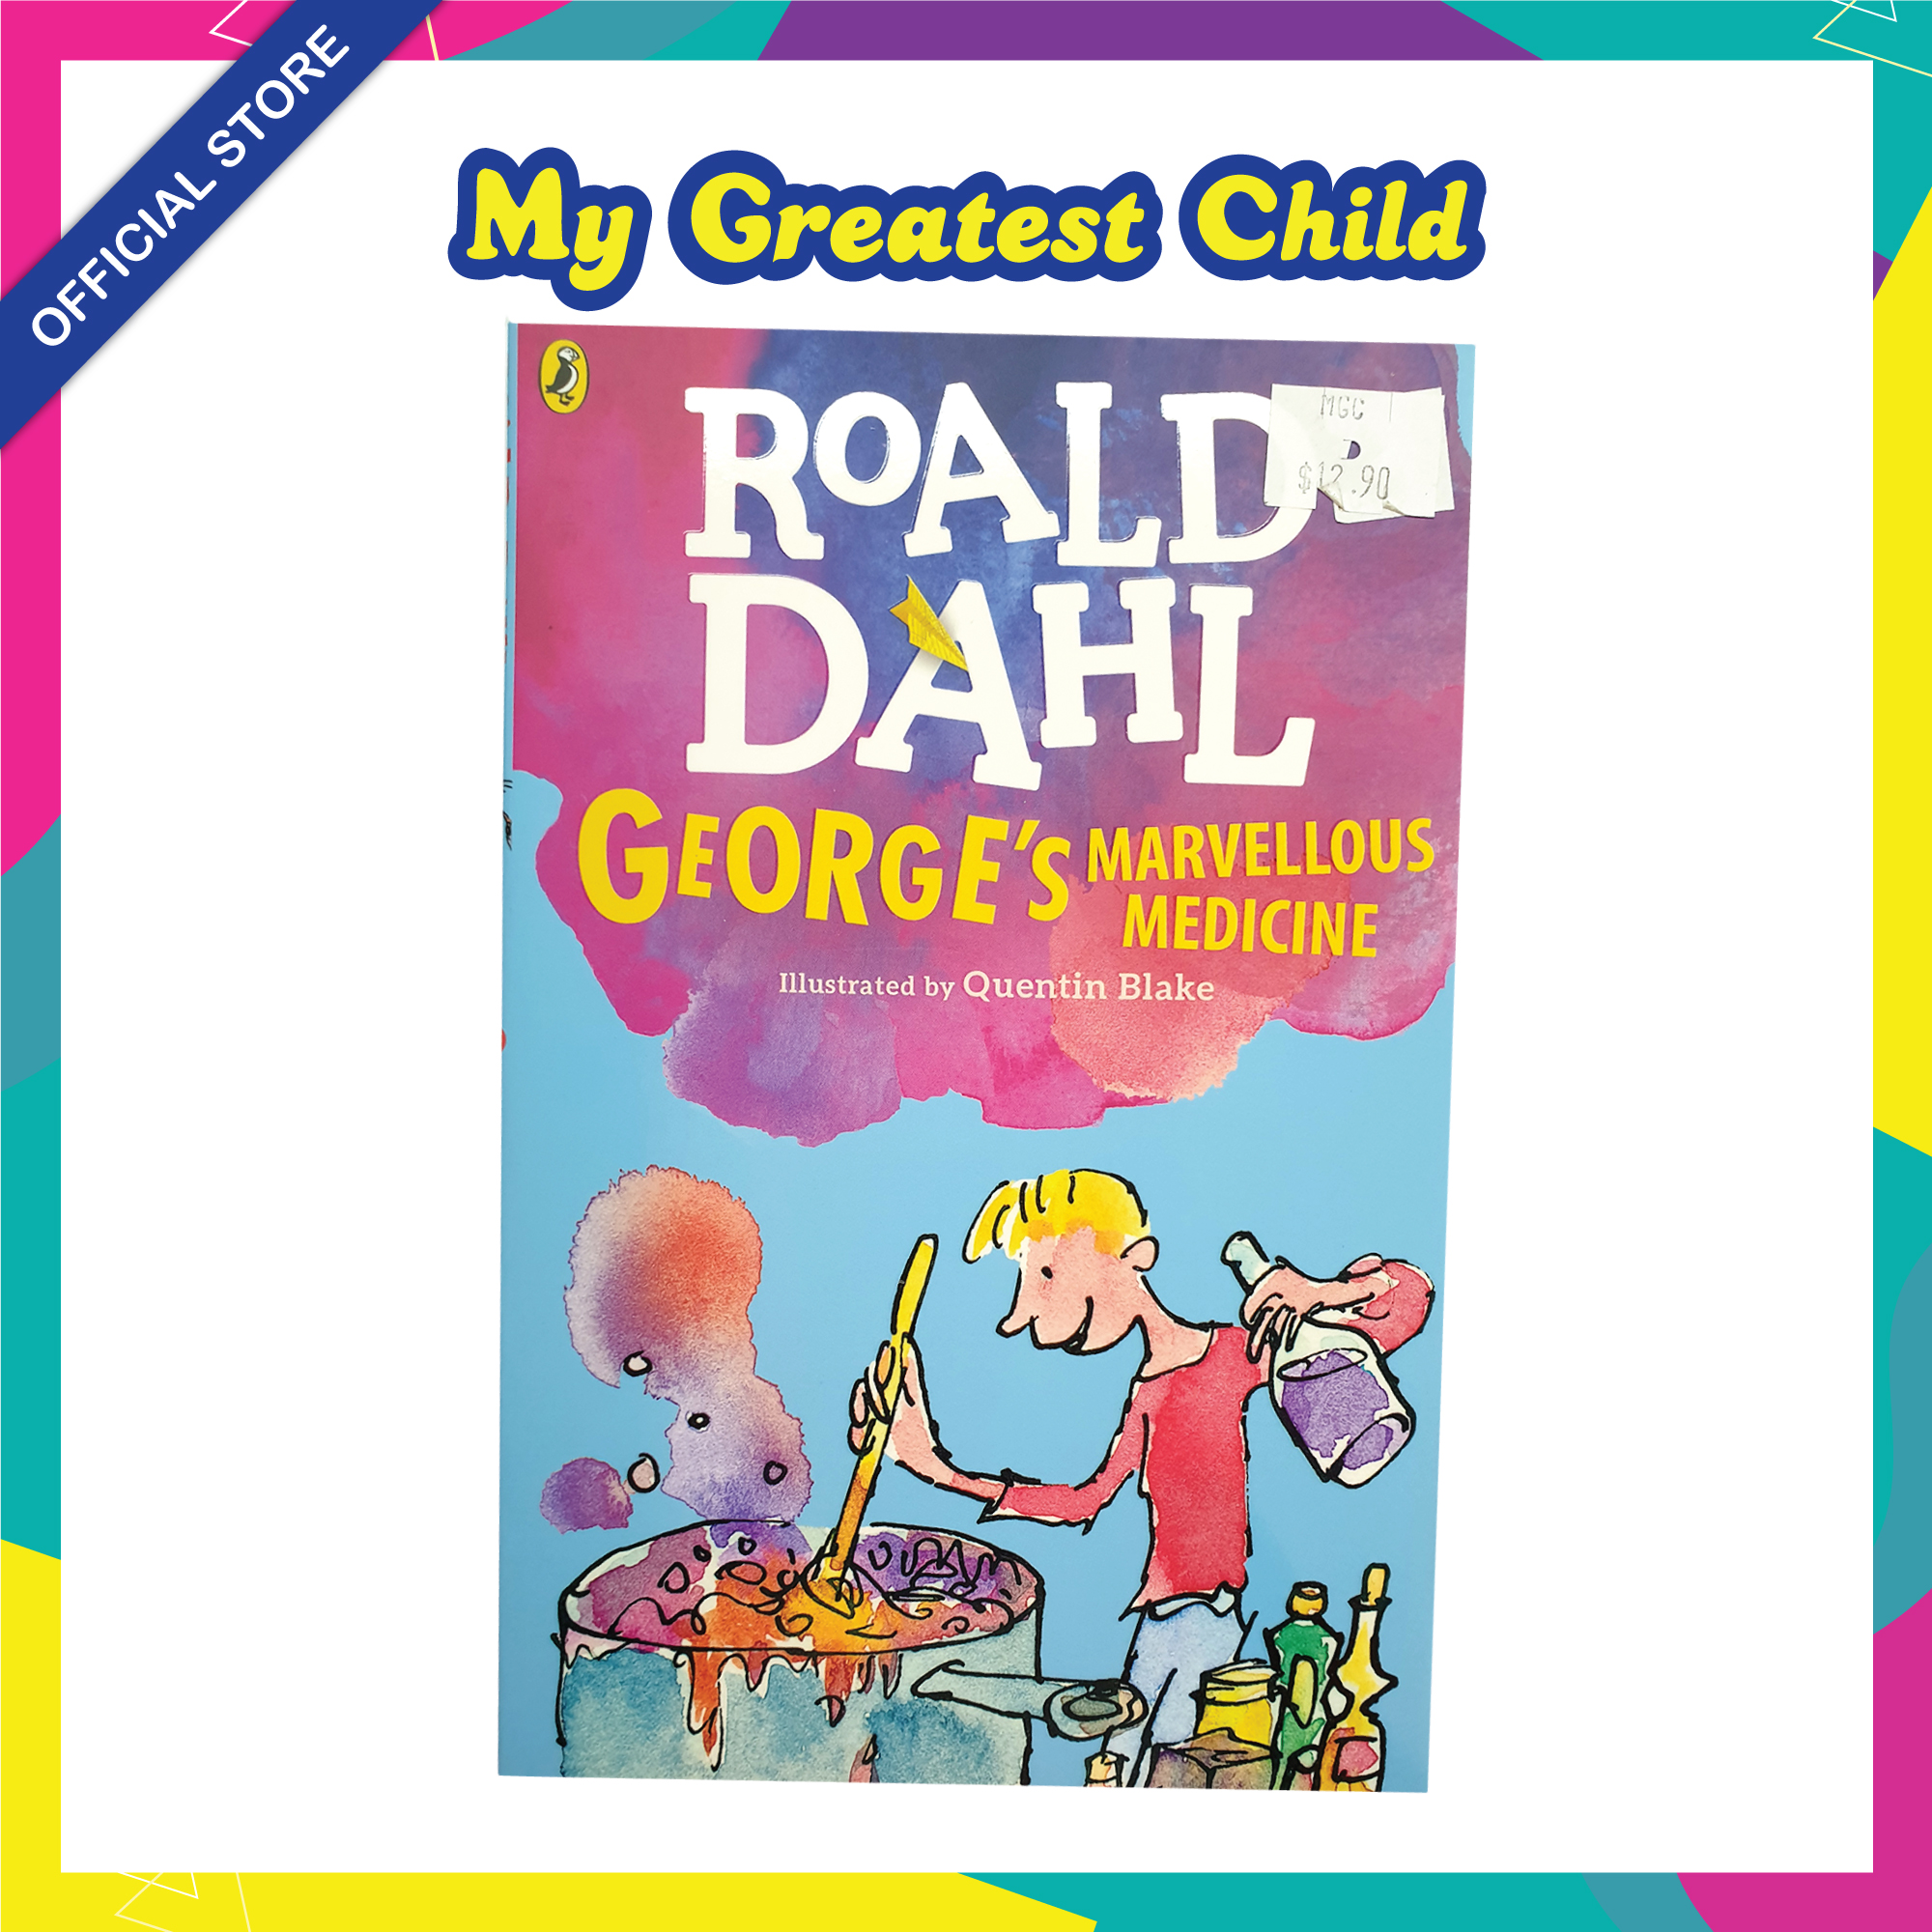 Georges Marvellous Medicine - Roald Dahl English Paperback Childrens Book (For Ages 7+)